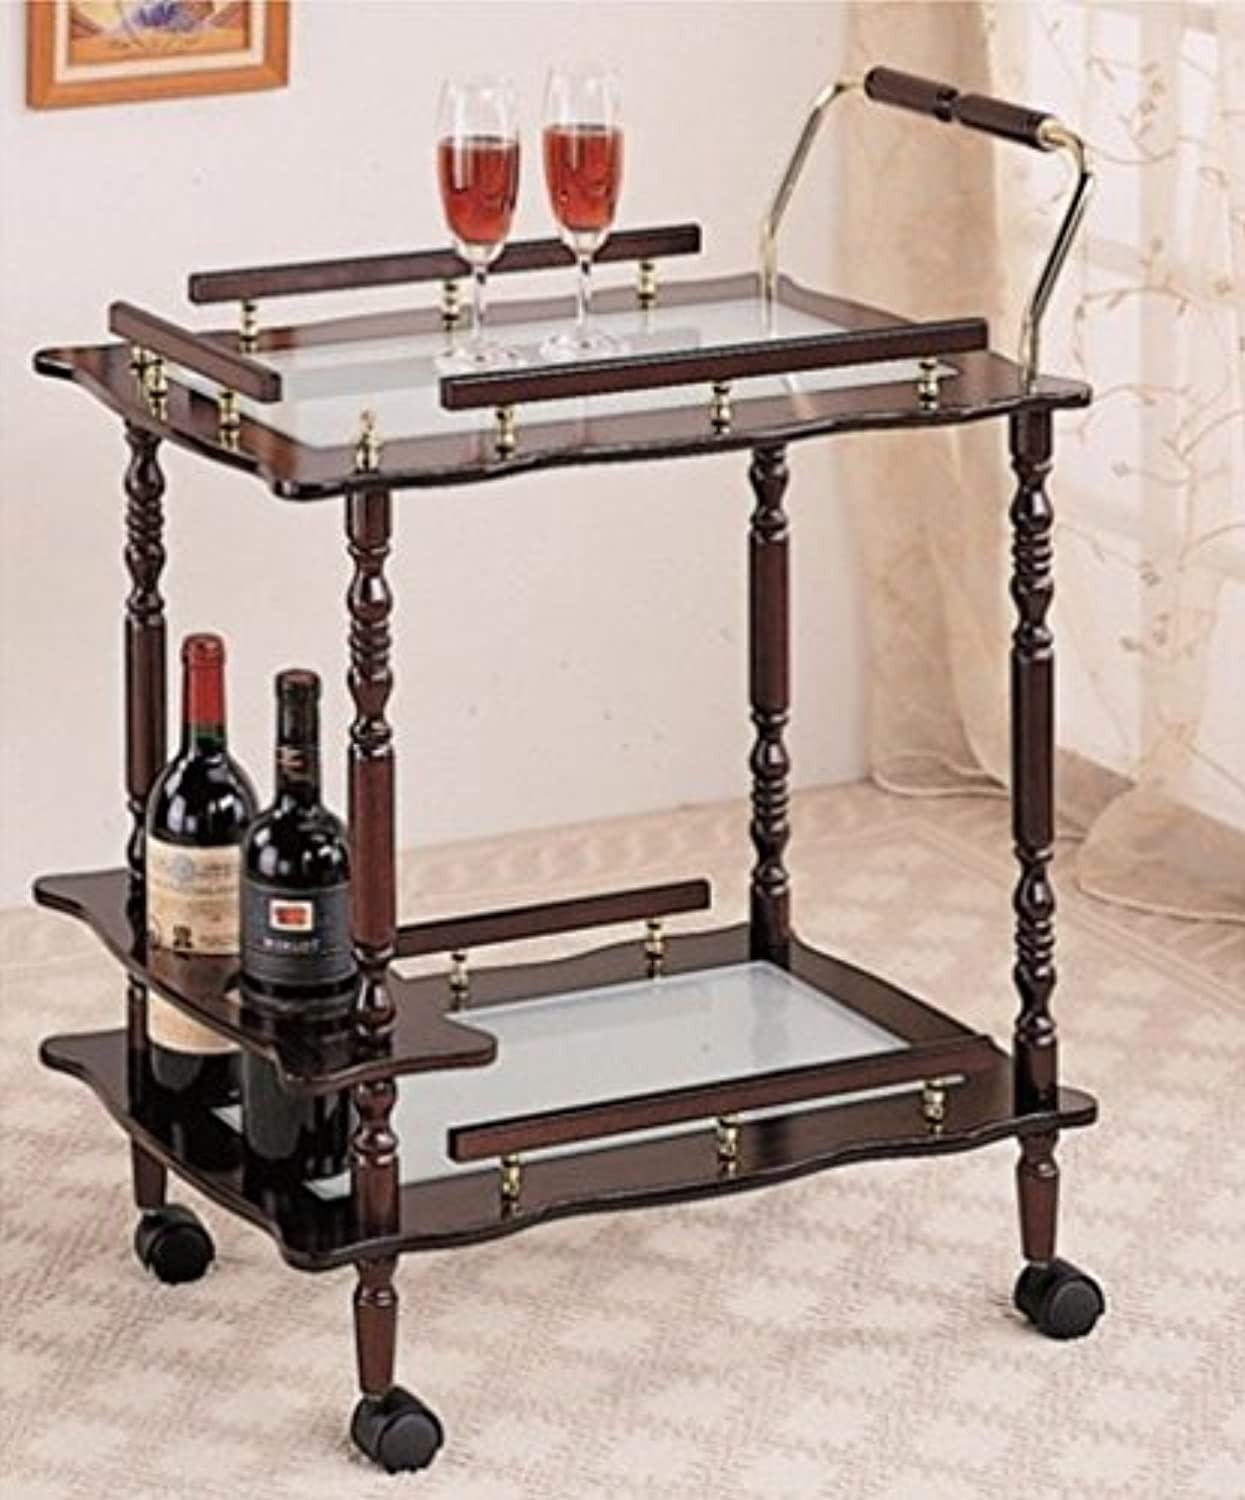 2-Tier Serving Cart, Cherry Wood Finish, Glass Top